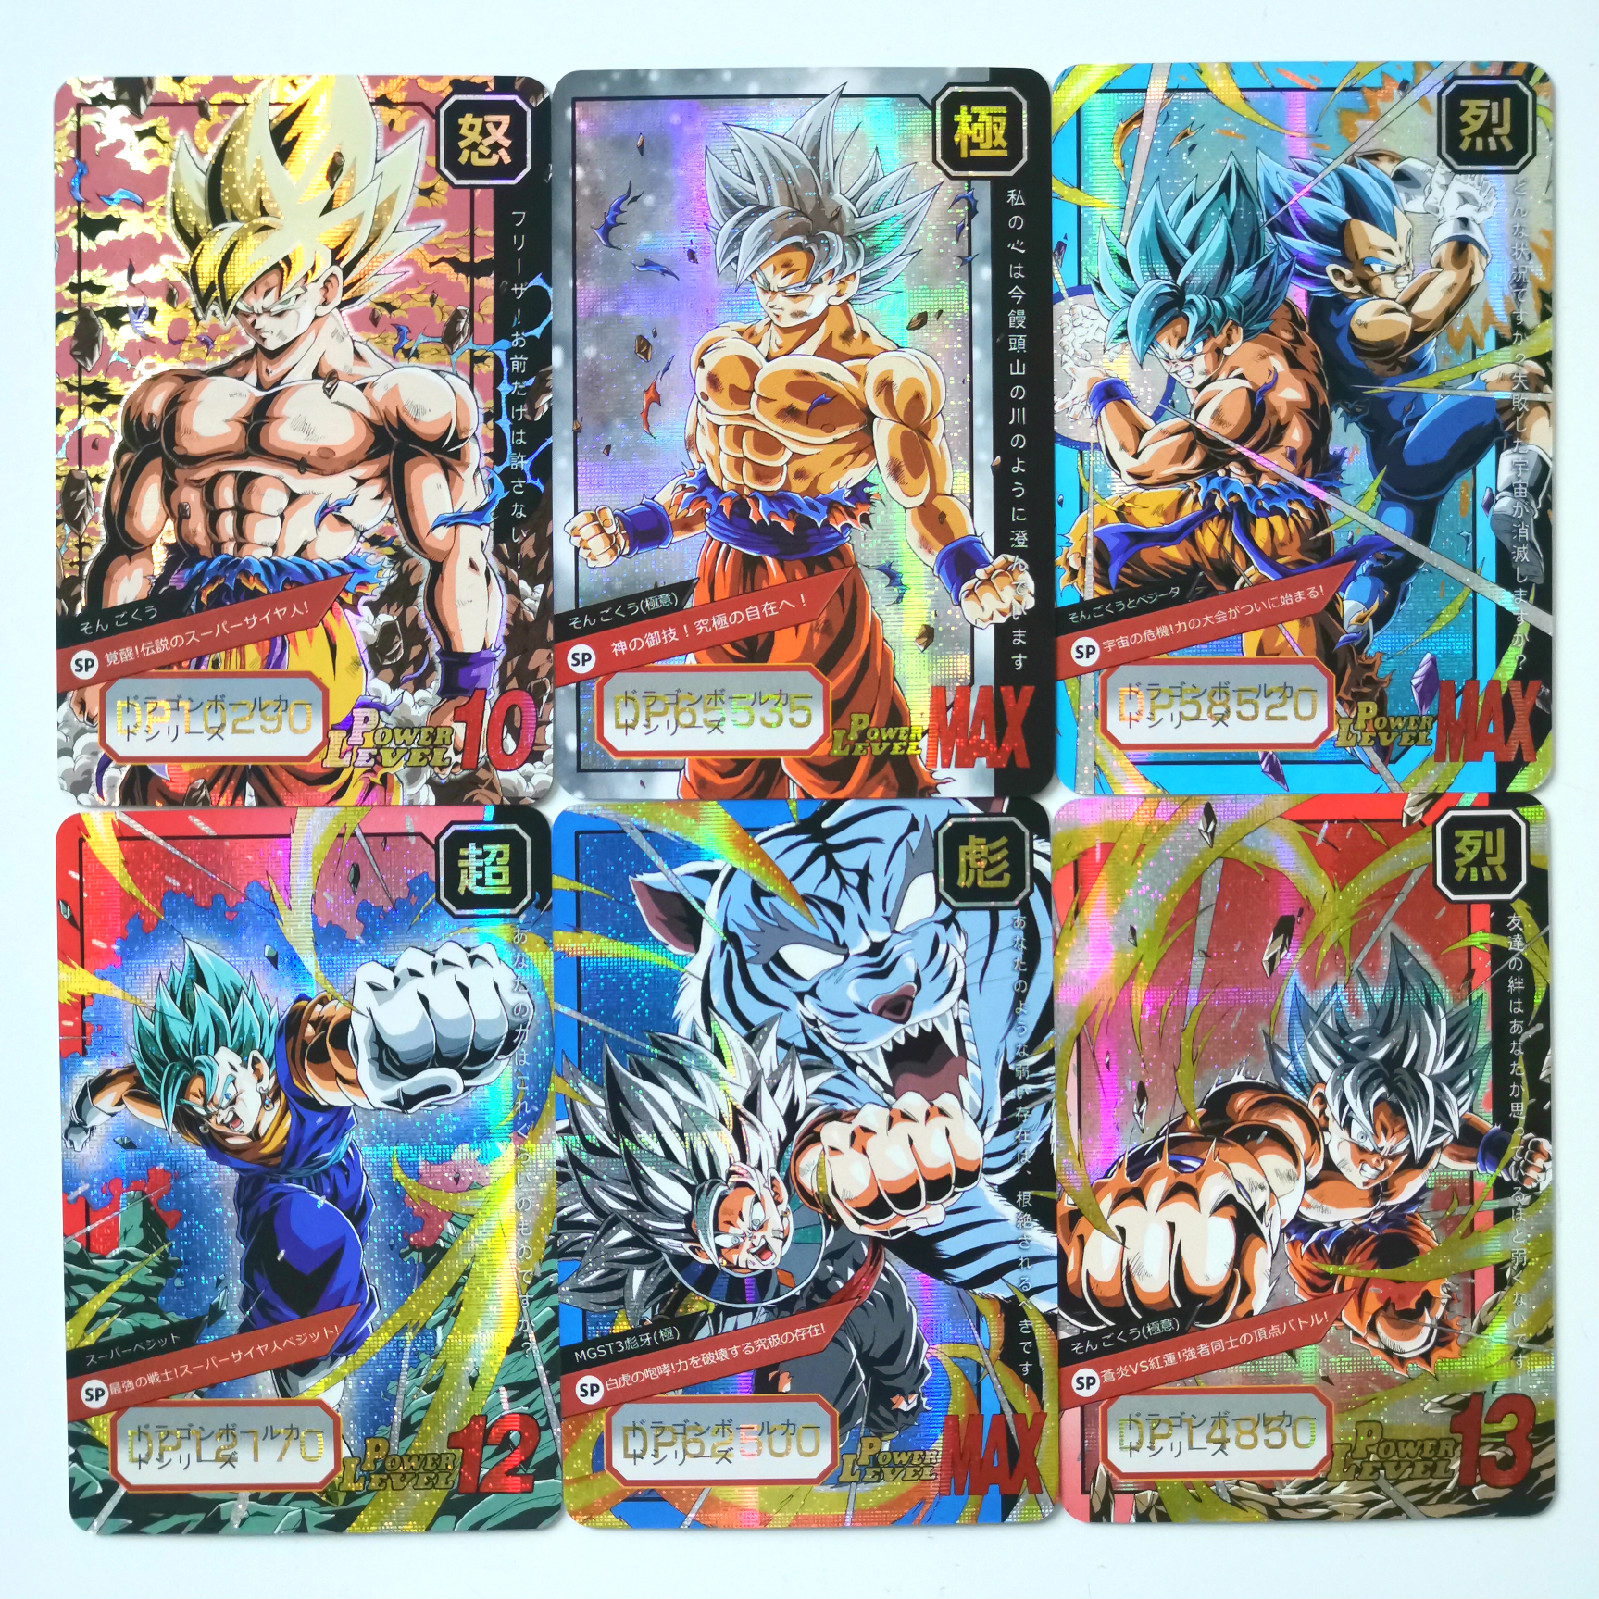 24pcs/set Devil Vegeta Super Dragon Ball Z Heroes Battle Card Game Collection Anime Cards